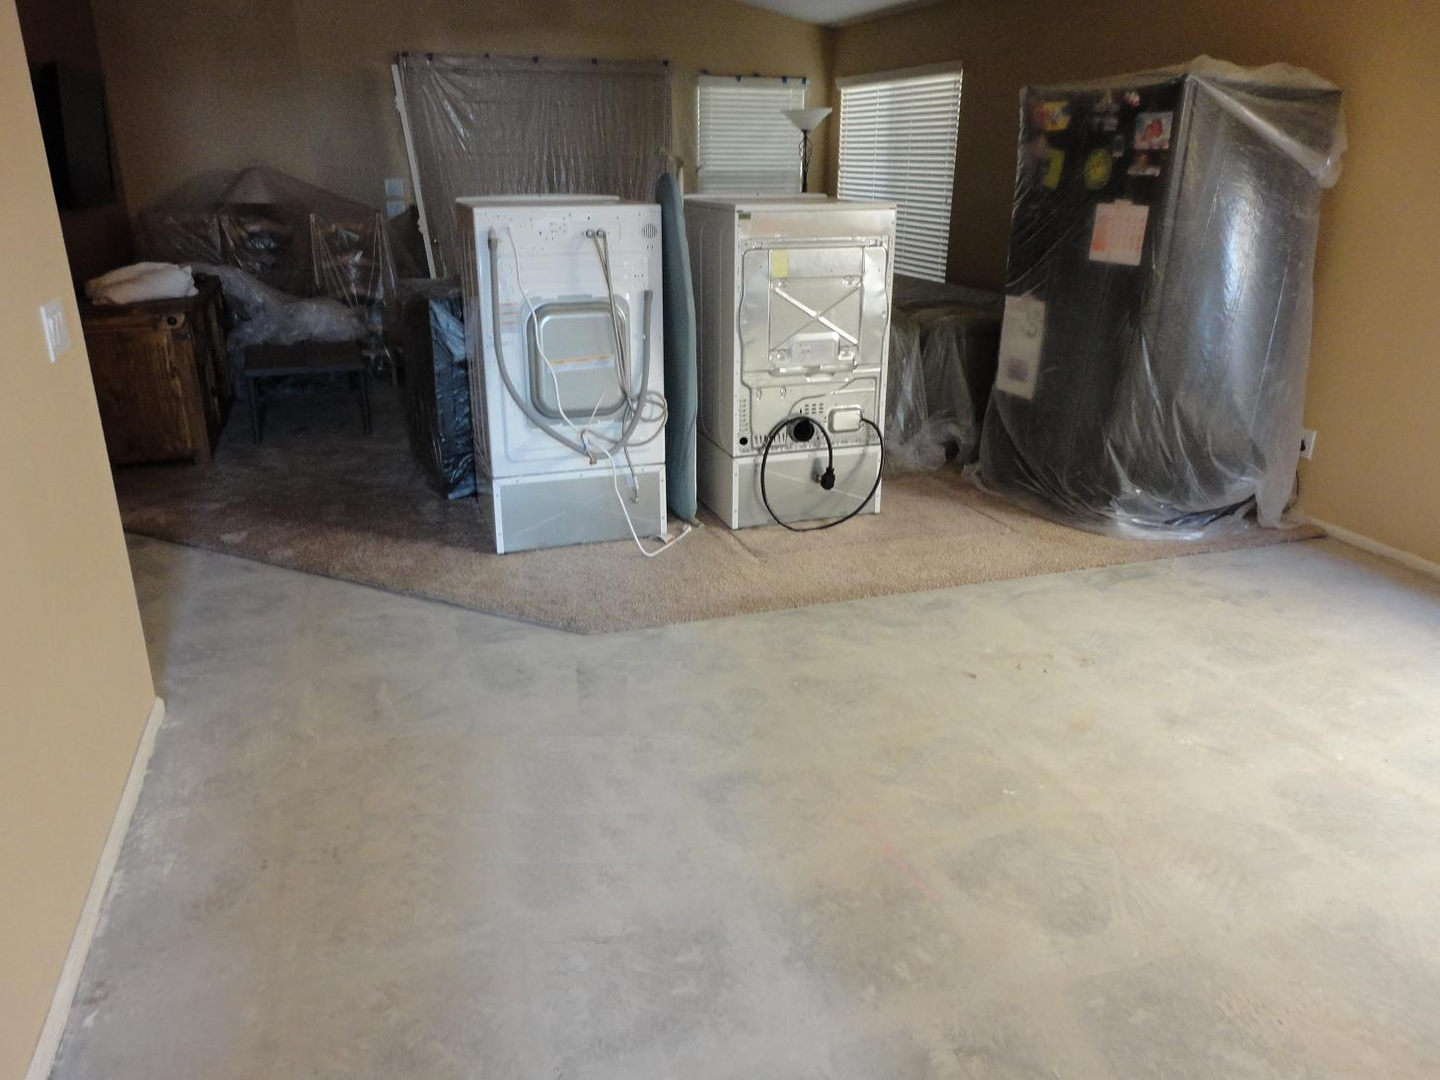 Ceramic tile removal the best way to save moneyefforttimesweat and tears is calling the one and only tile removal crew affordable and fast tile removal services dailygadgetfo Images